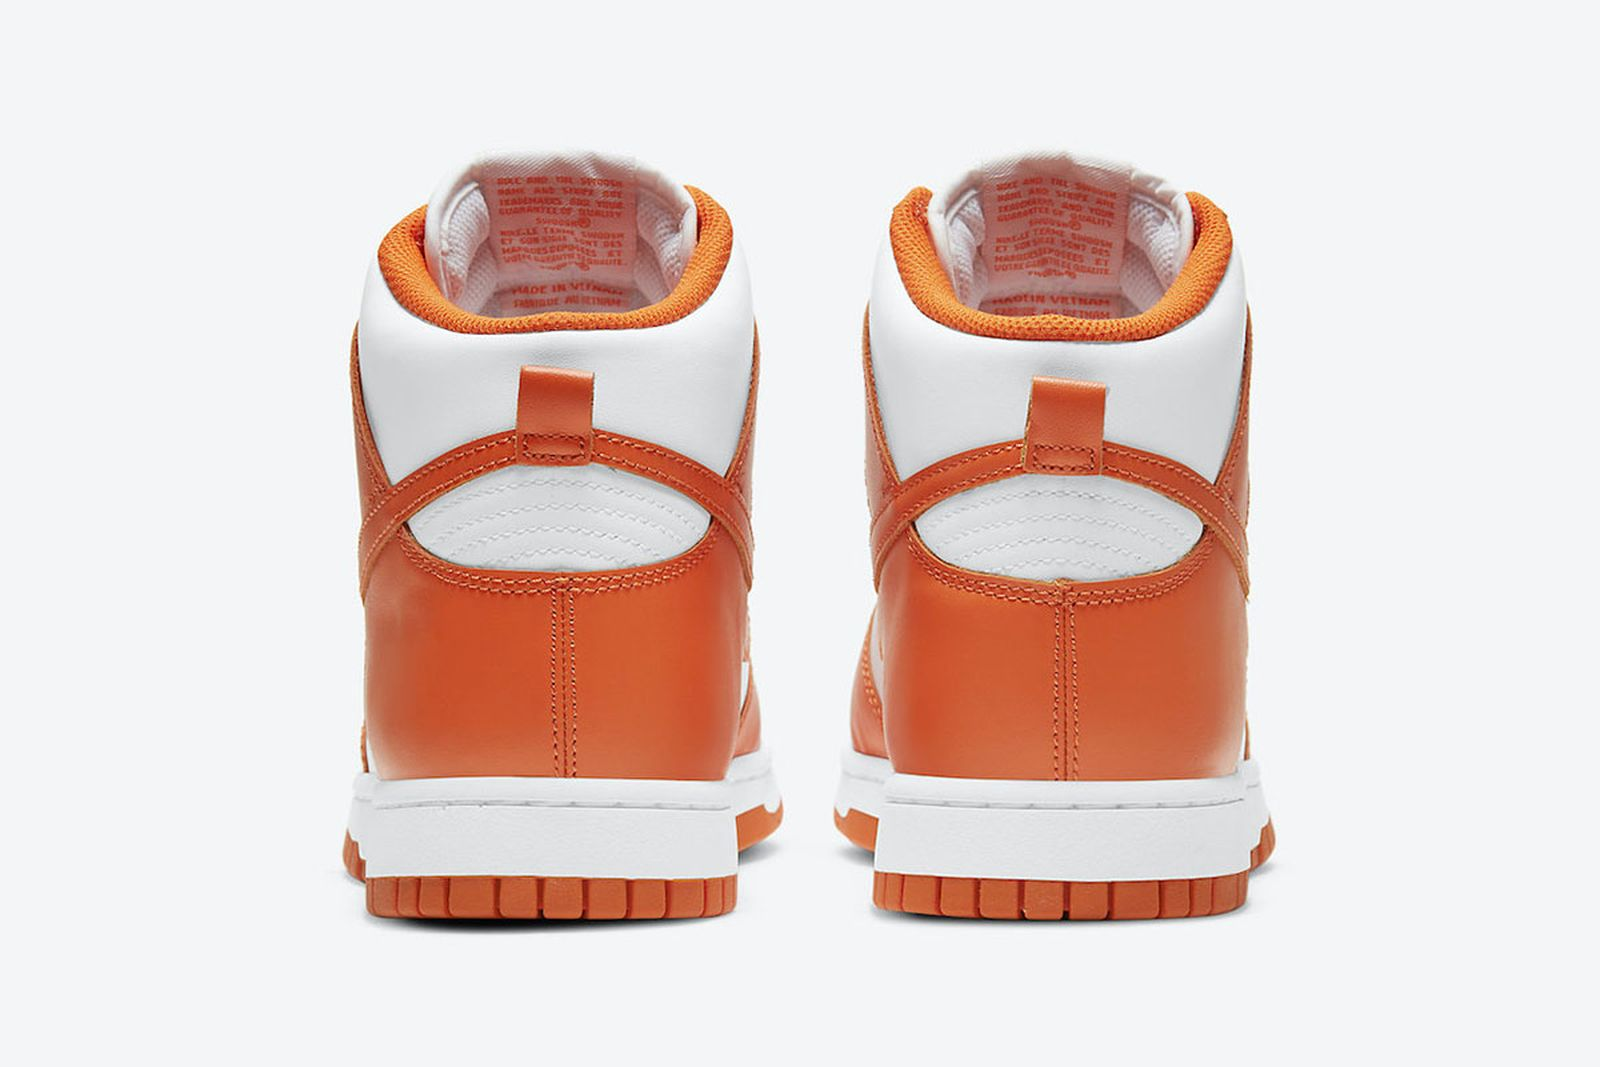 nike-dunk-high-syracuse-release-date-price-03